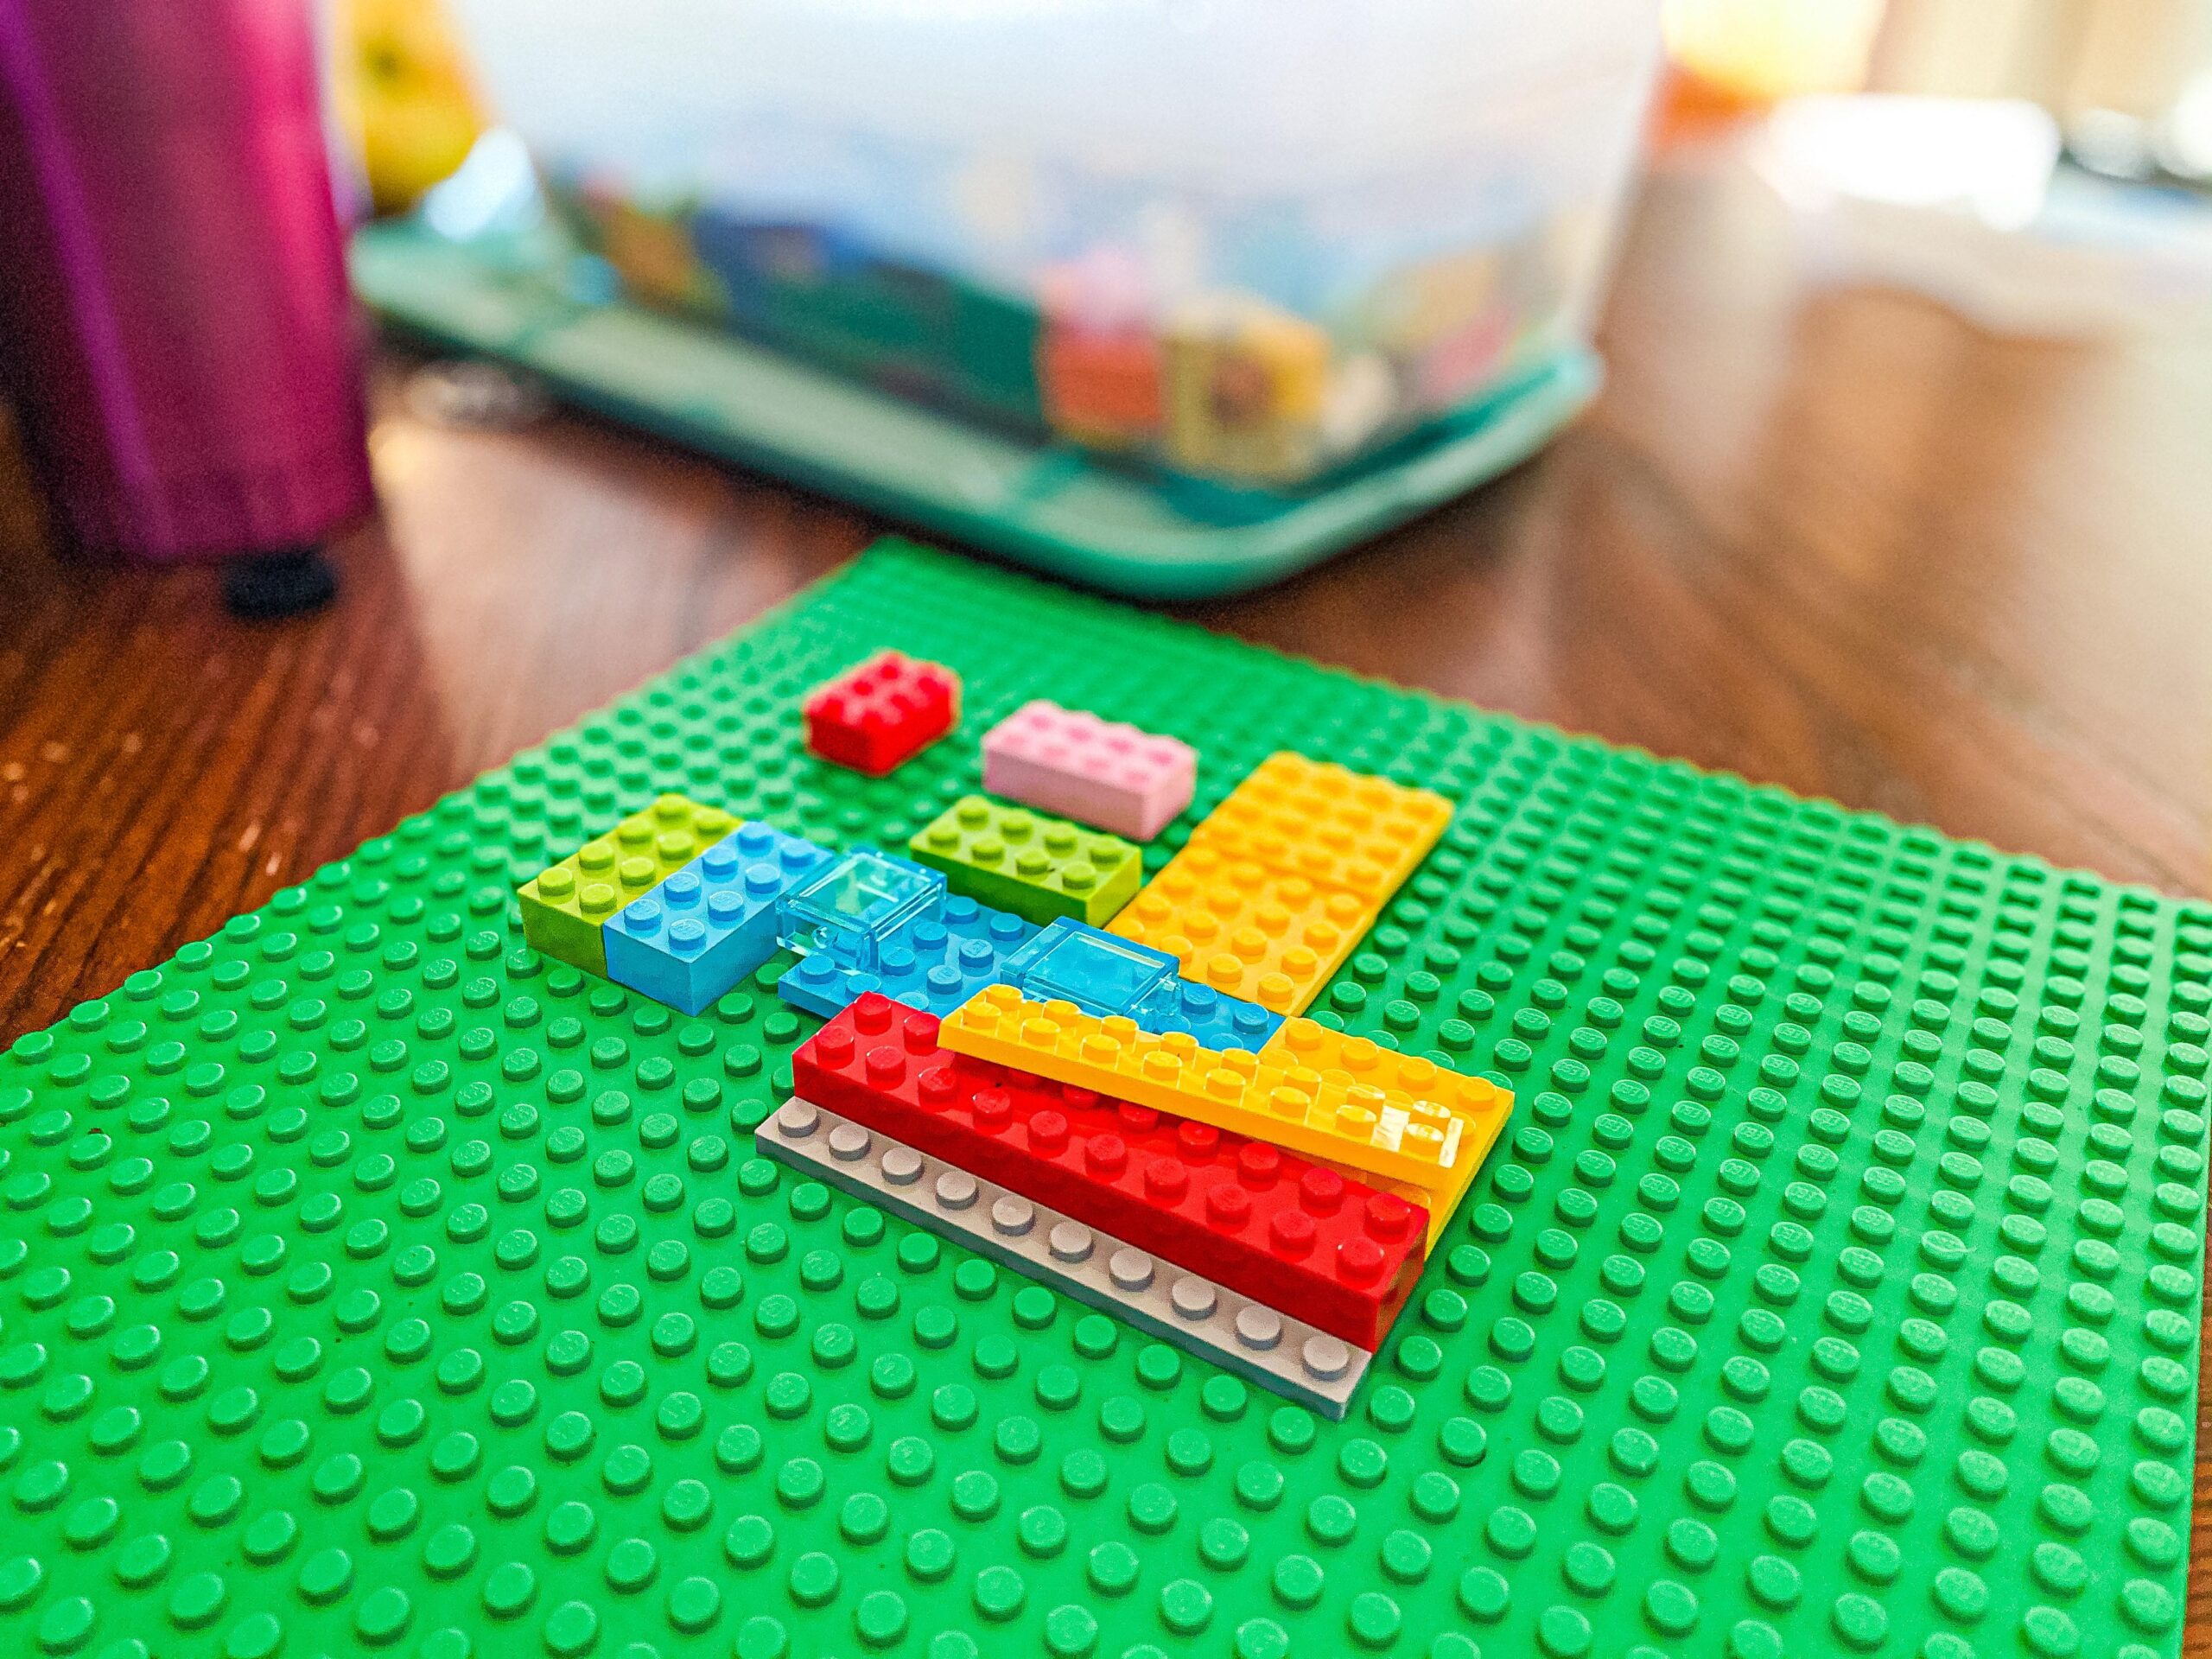 Build Your Home Lego Activity for Pre-k All About Me Theme